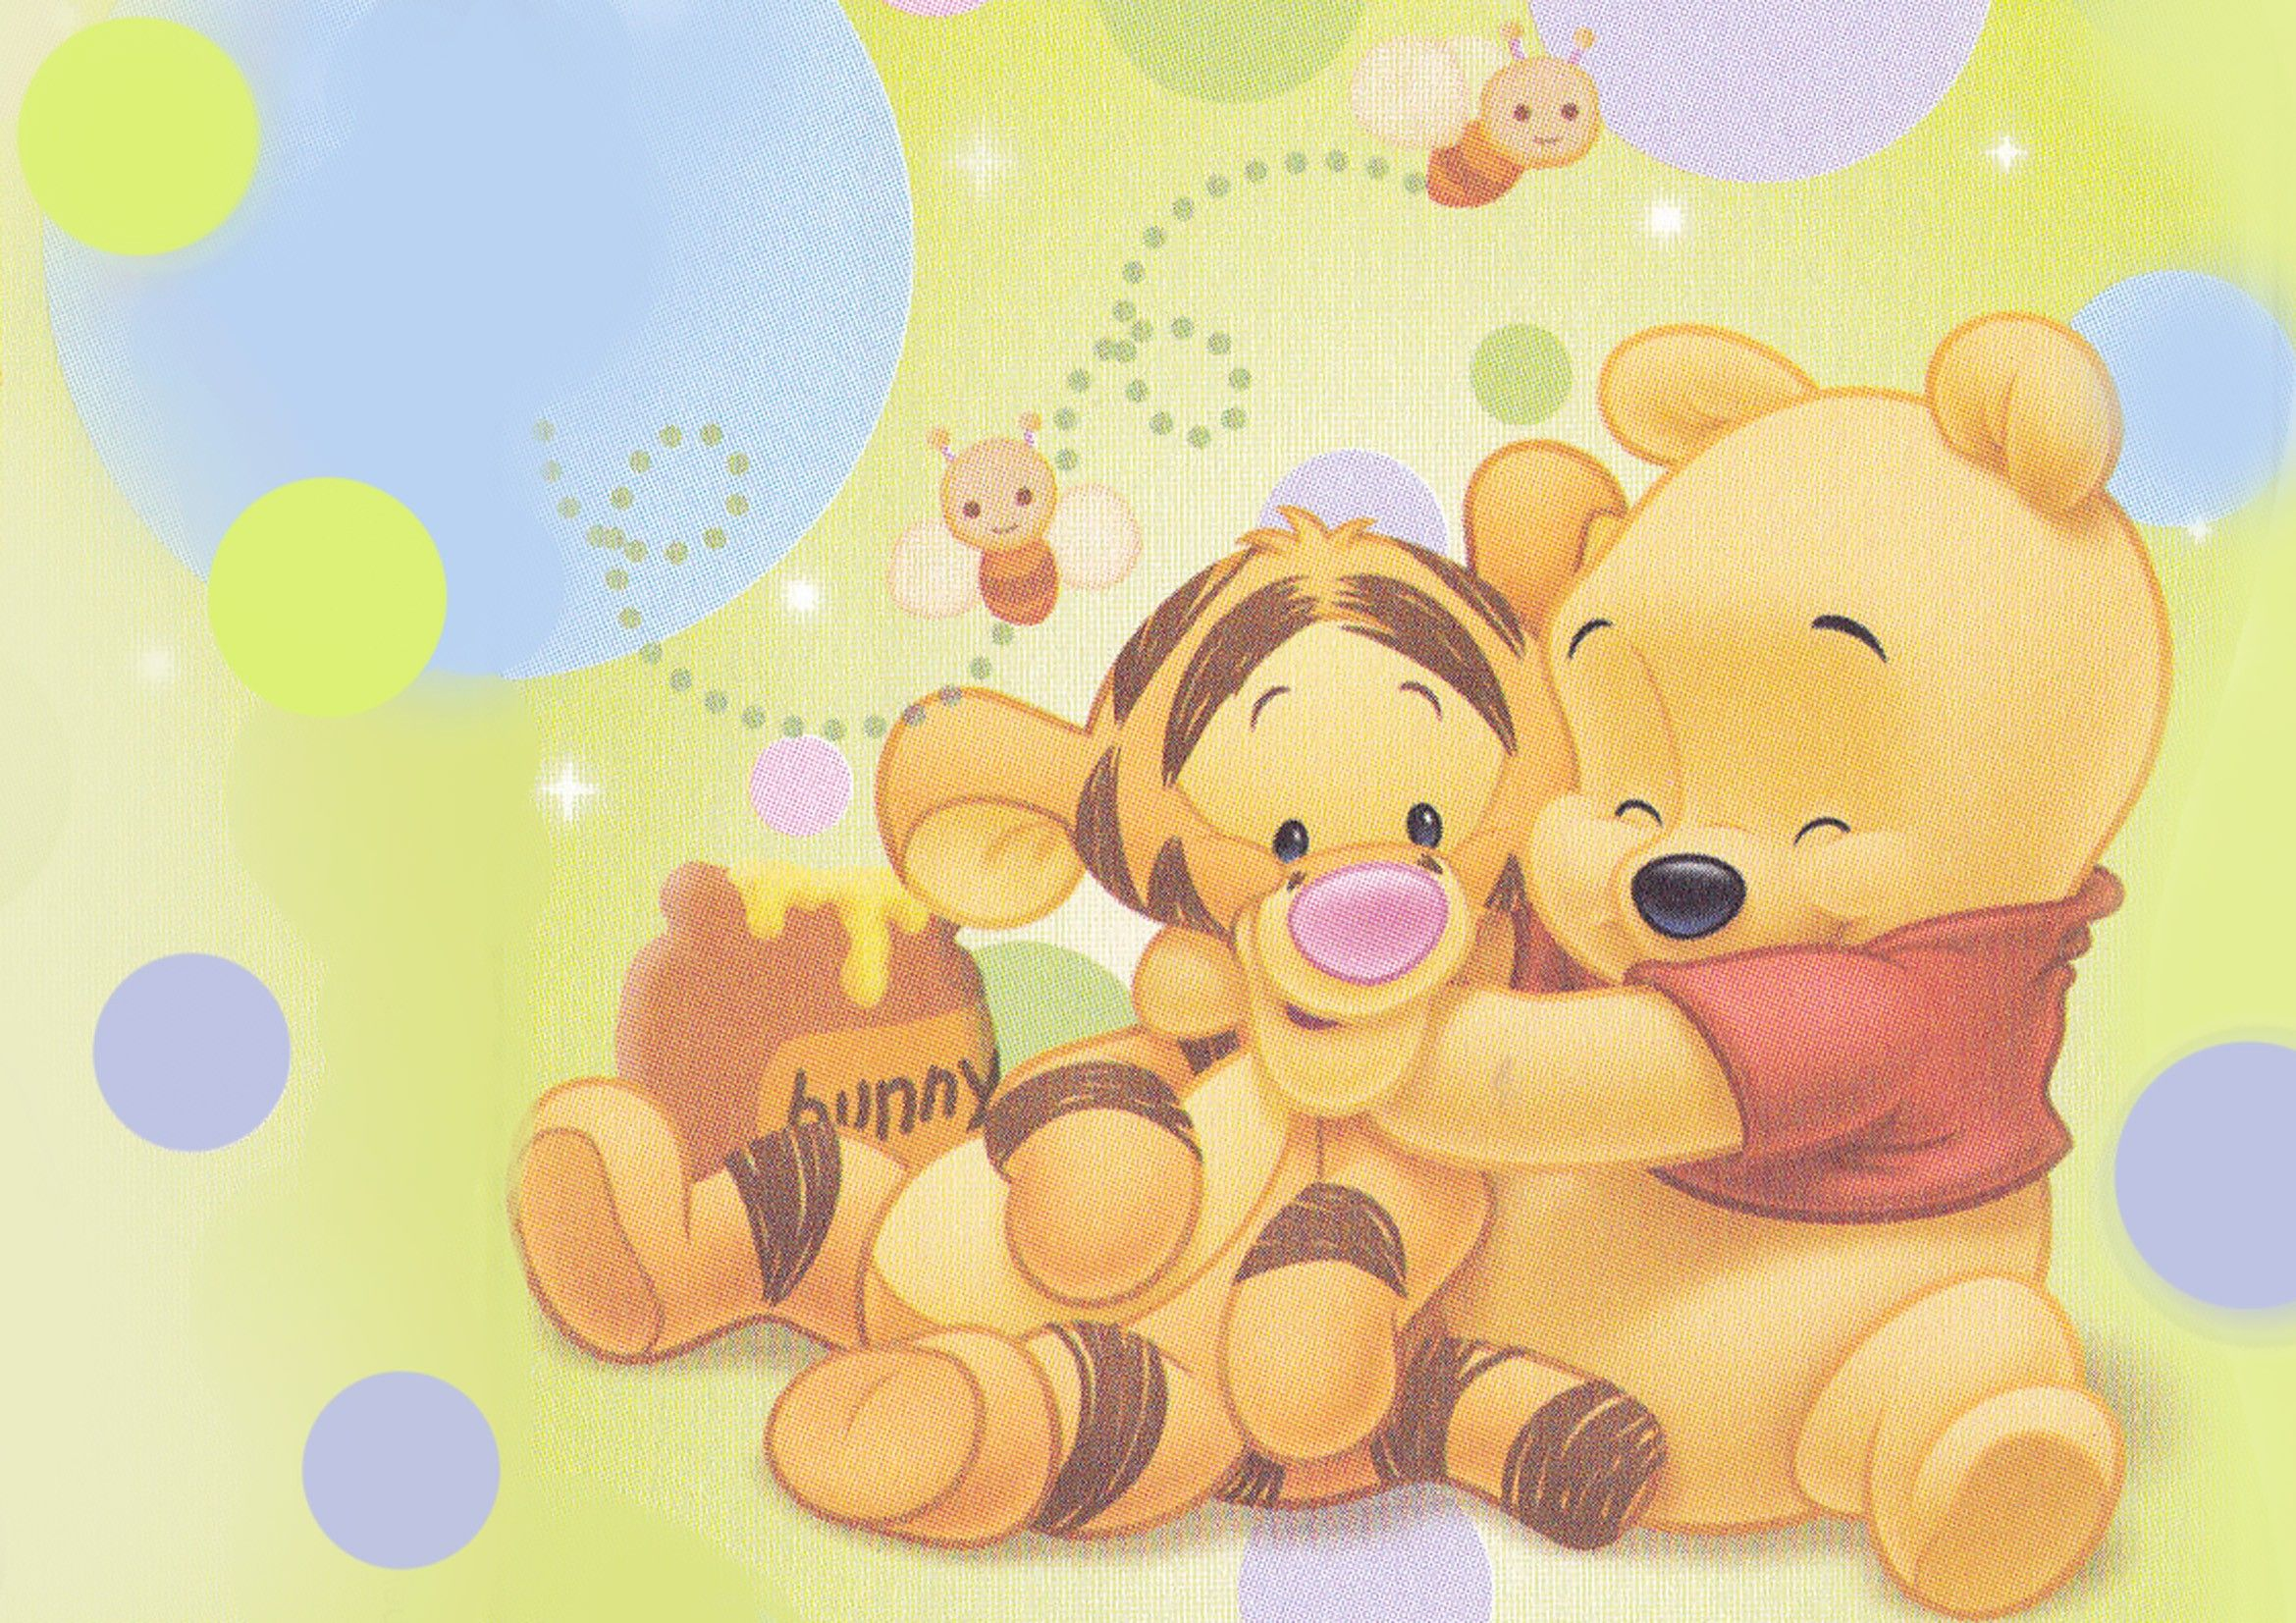 Winnie The Pooh Wallpapers Top Free Winnie The Pooh